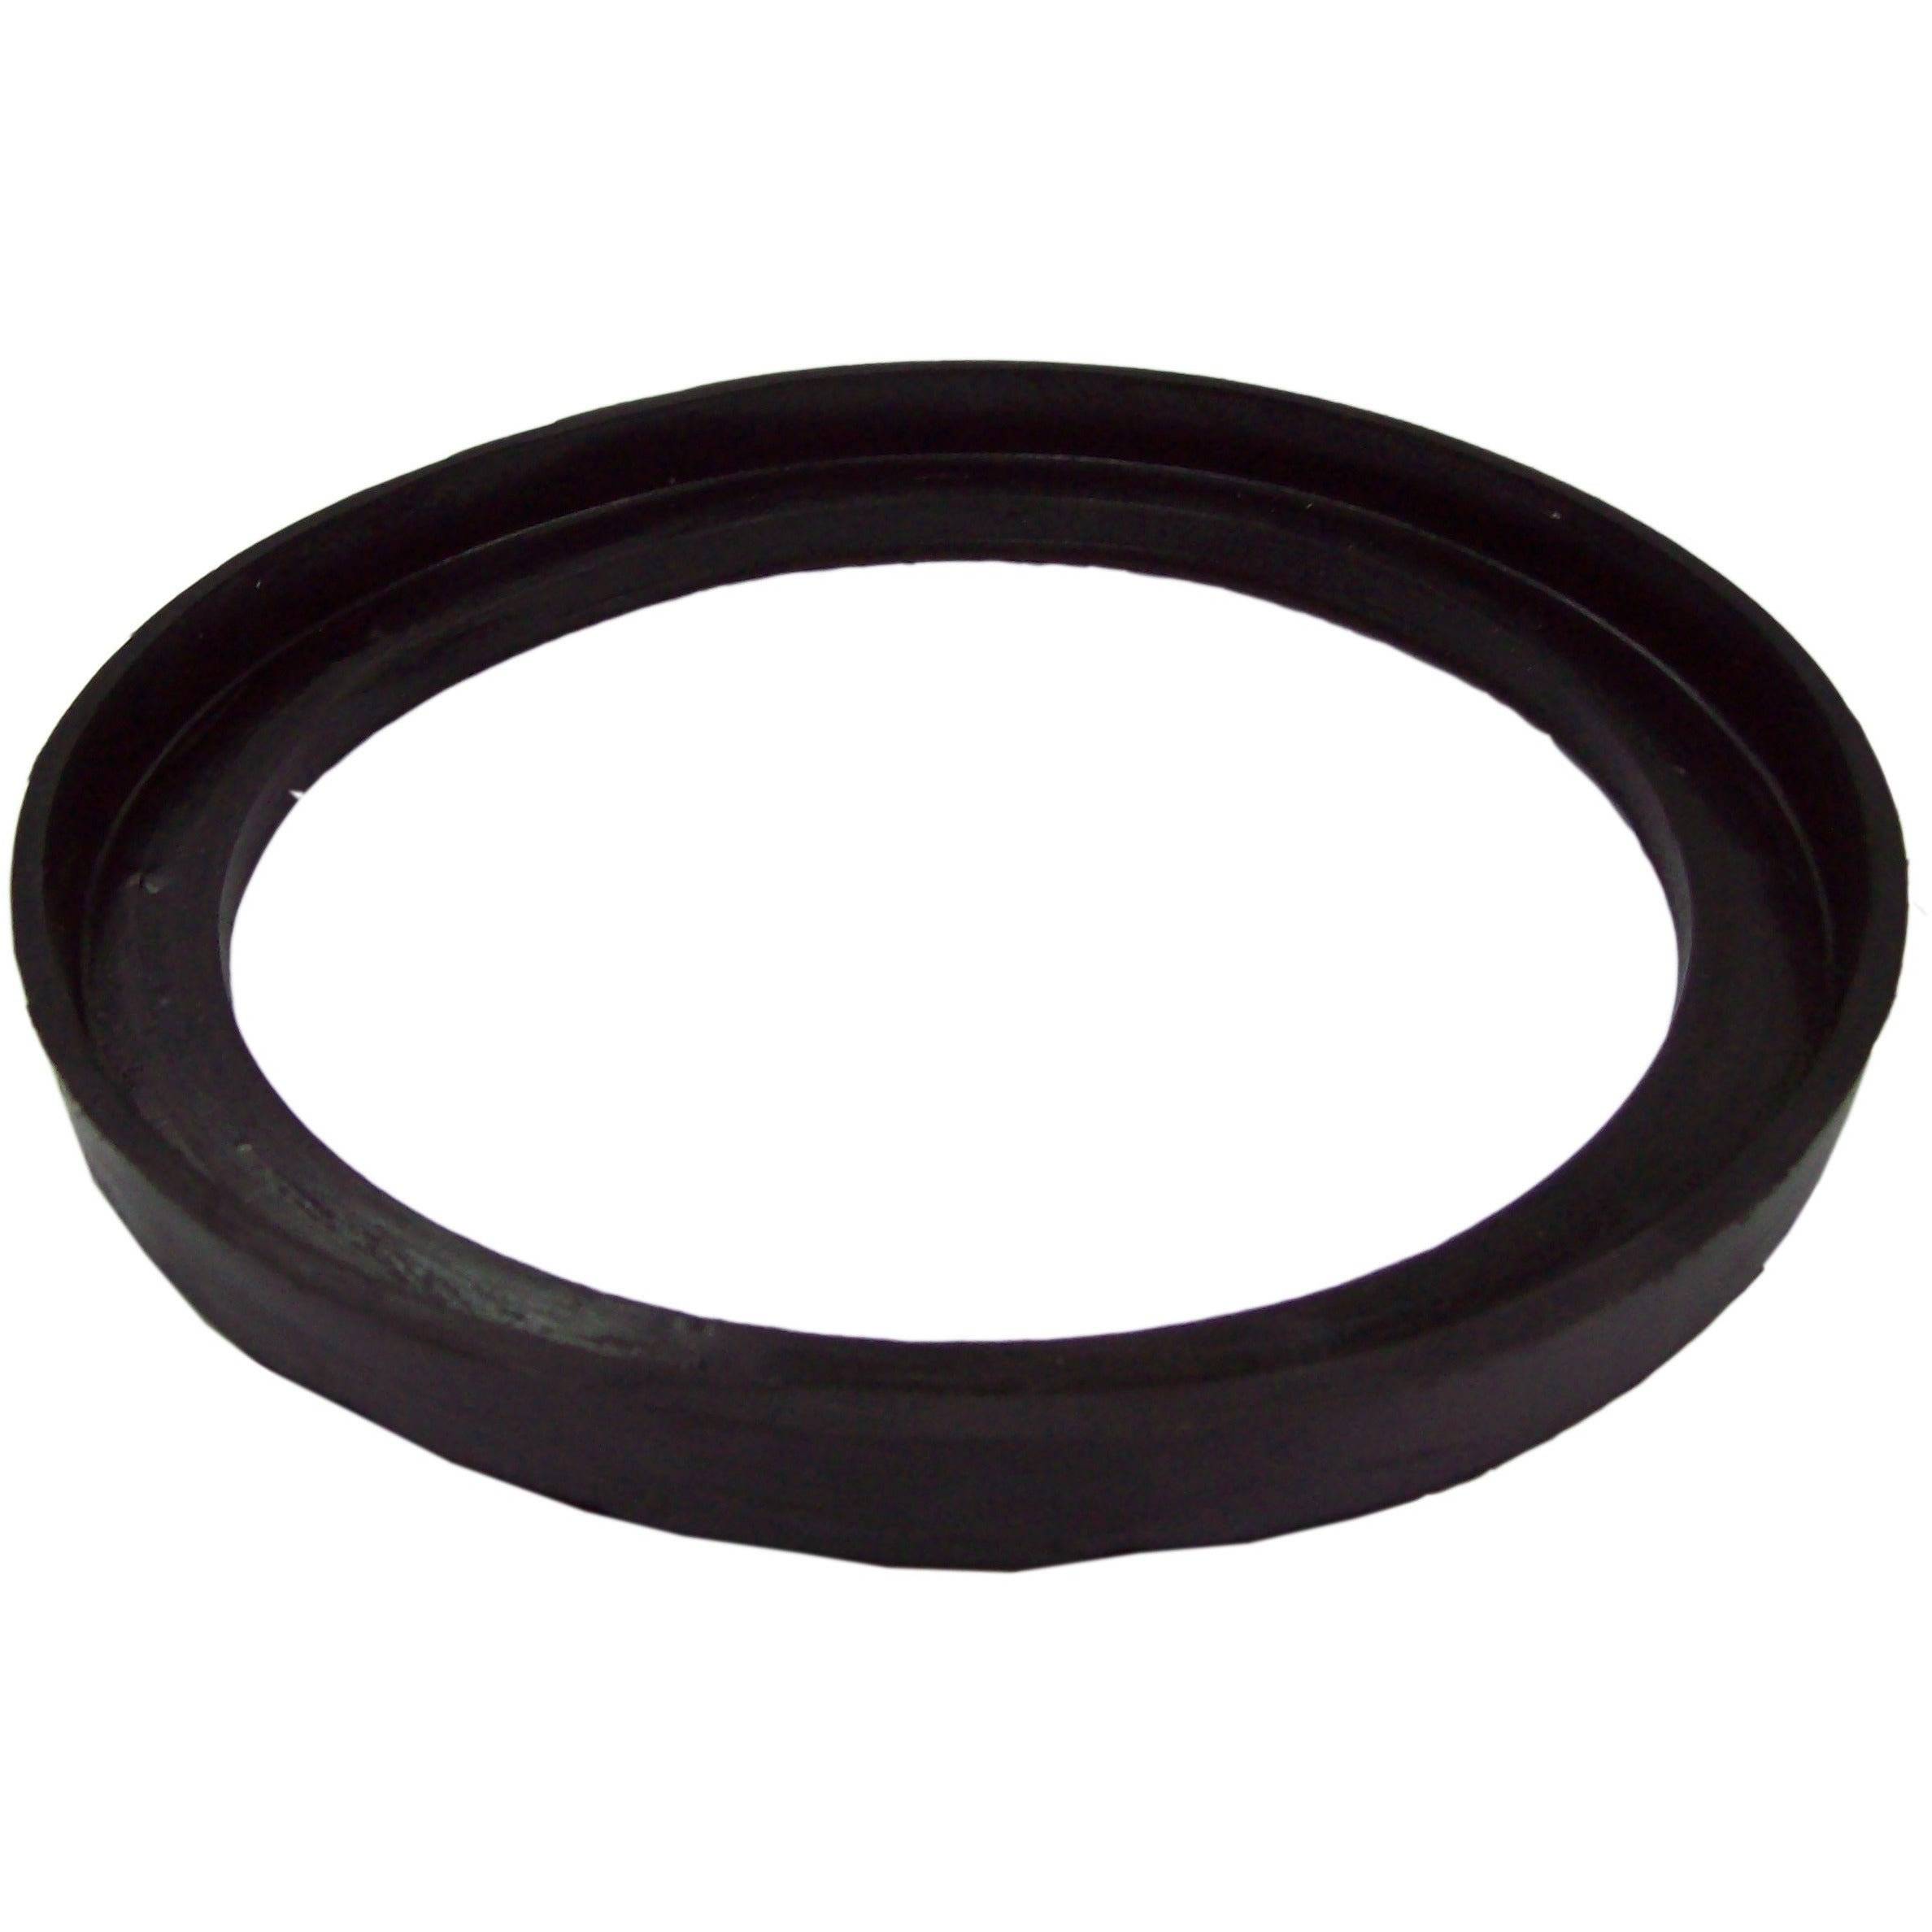 FILTA RUBBER MOTOR GASKET 11MM - SUITS 145MM MOTOR, INNER THICKNESS OF 11MM